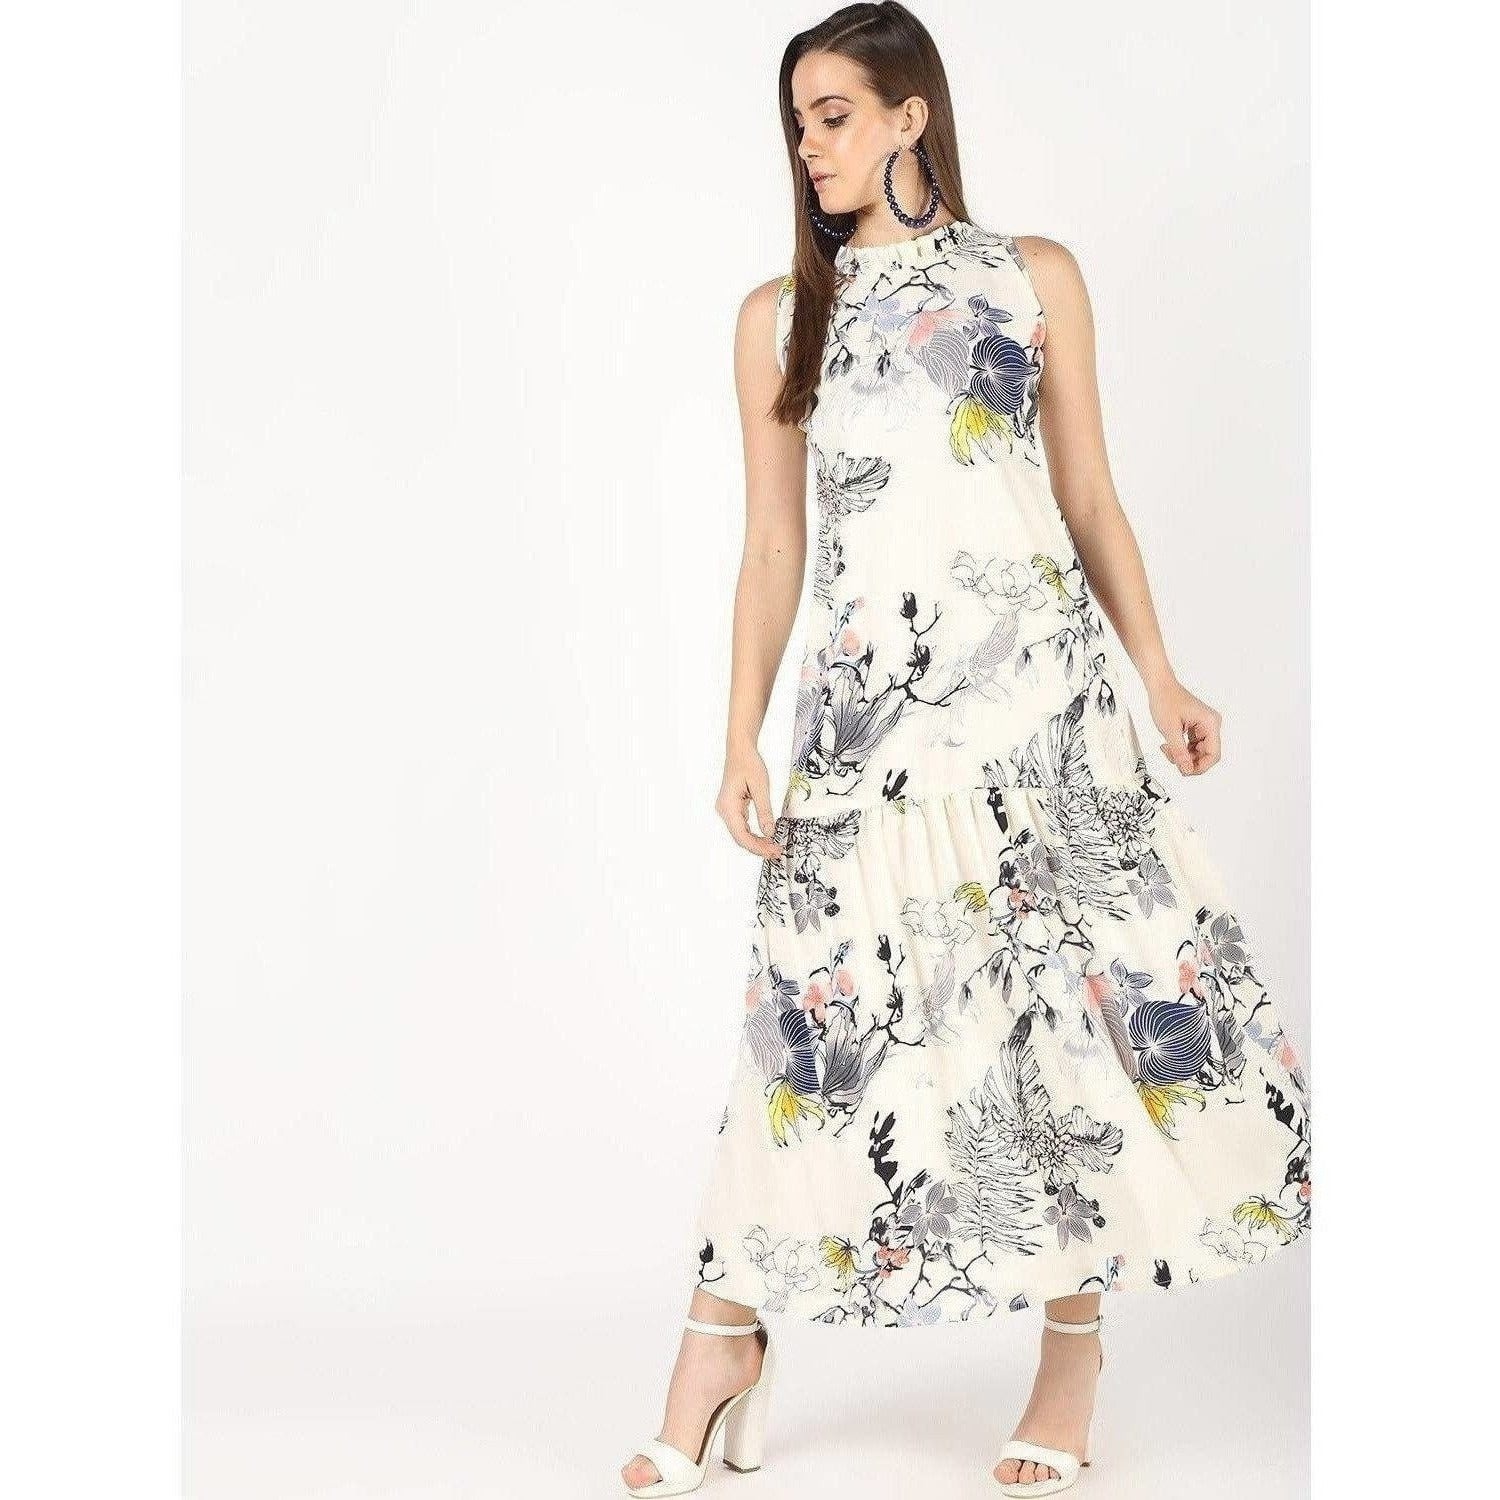 Cheera Flowral Printed Long A-Line Party Dress